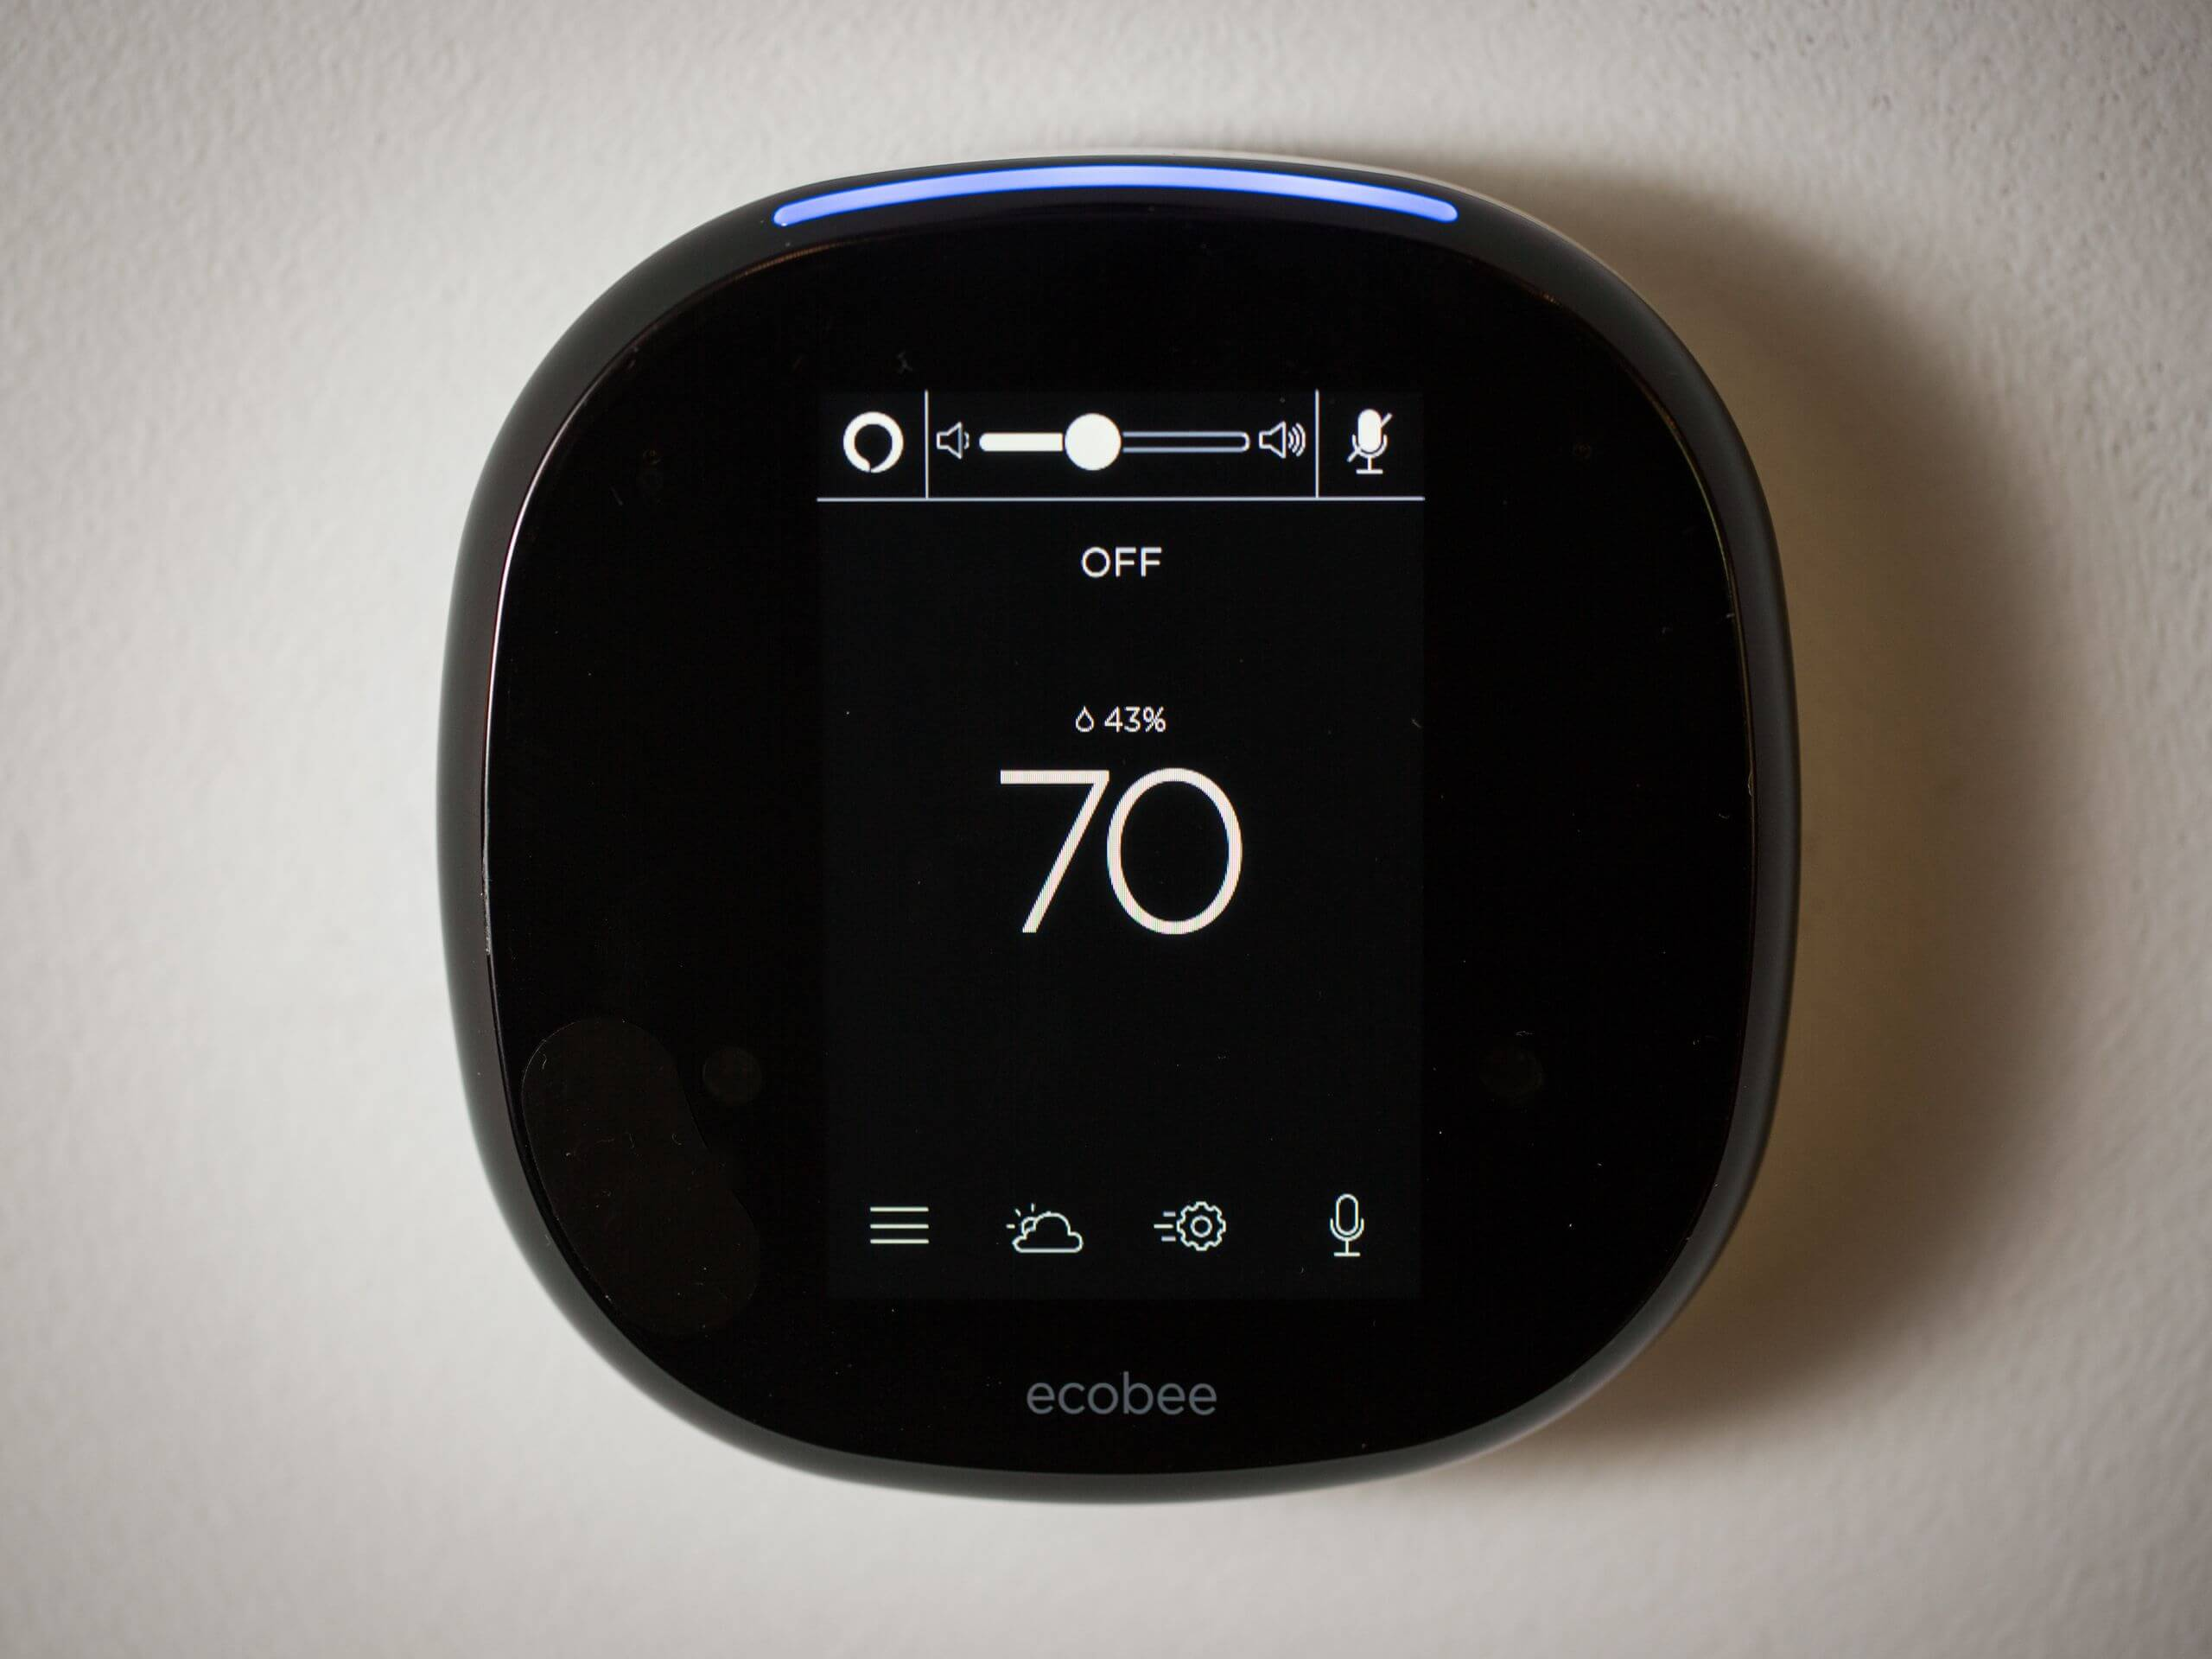 The Ecobee4, the newest smart thermostat from Ecobee